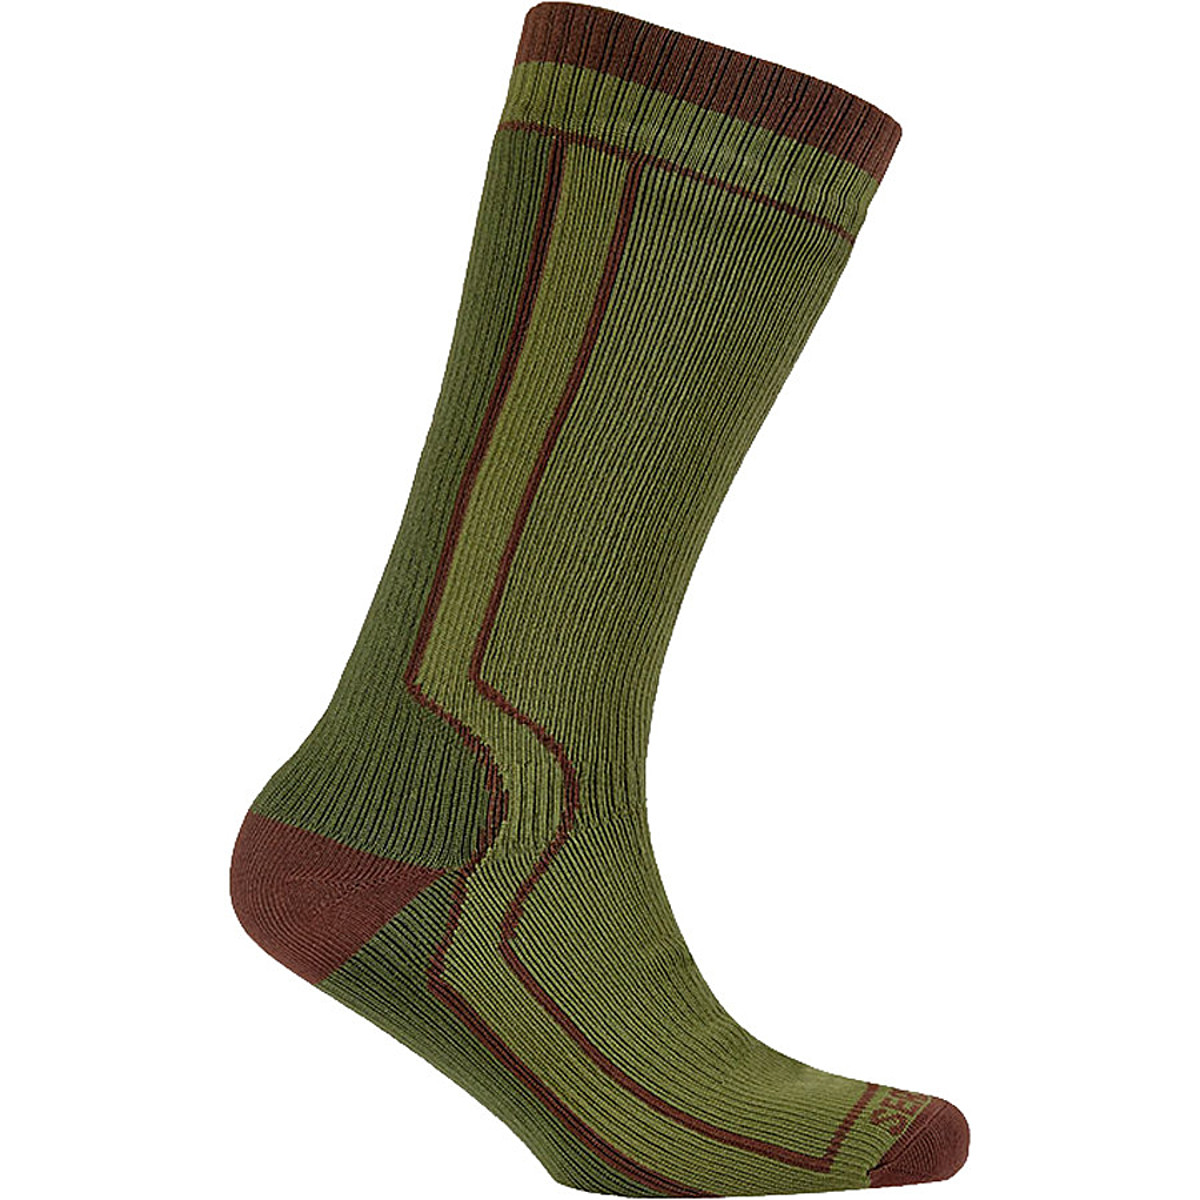 photo of a SealSkinz sock